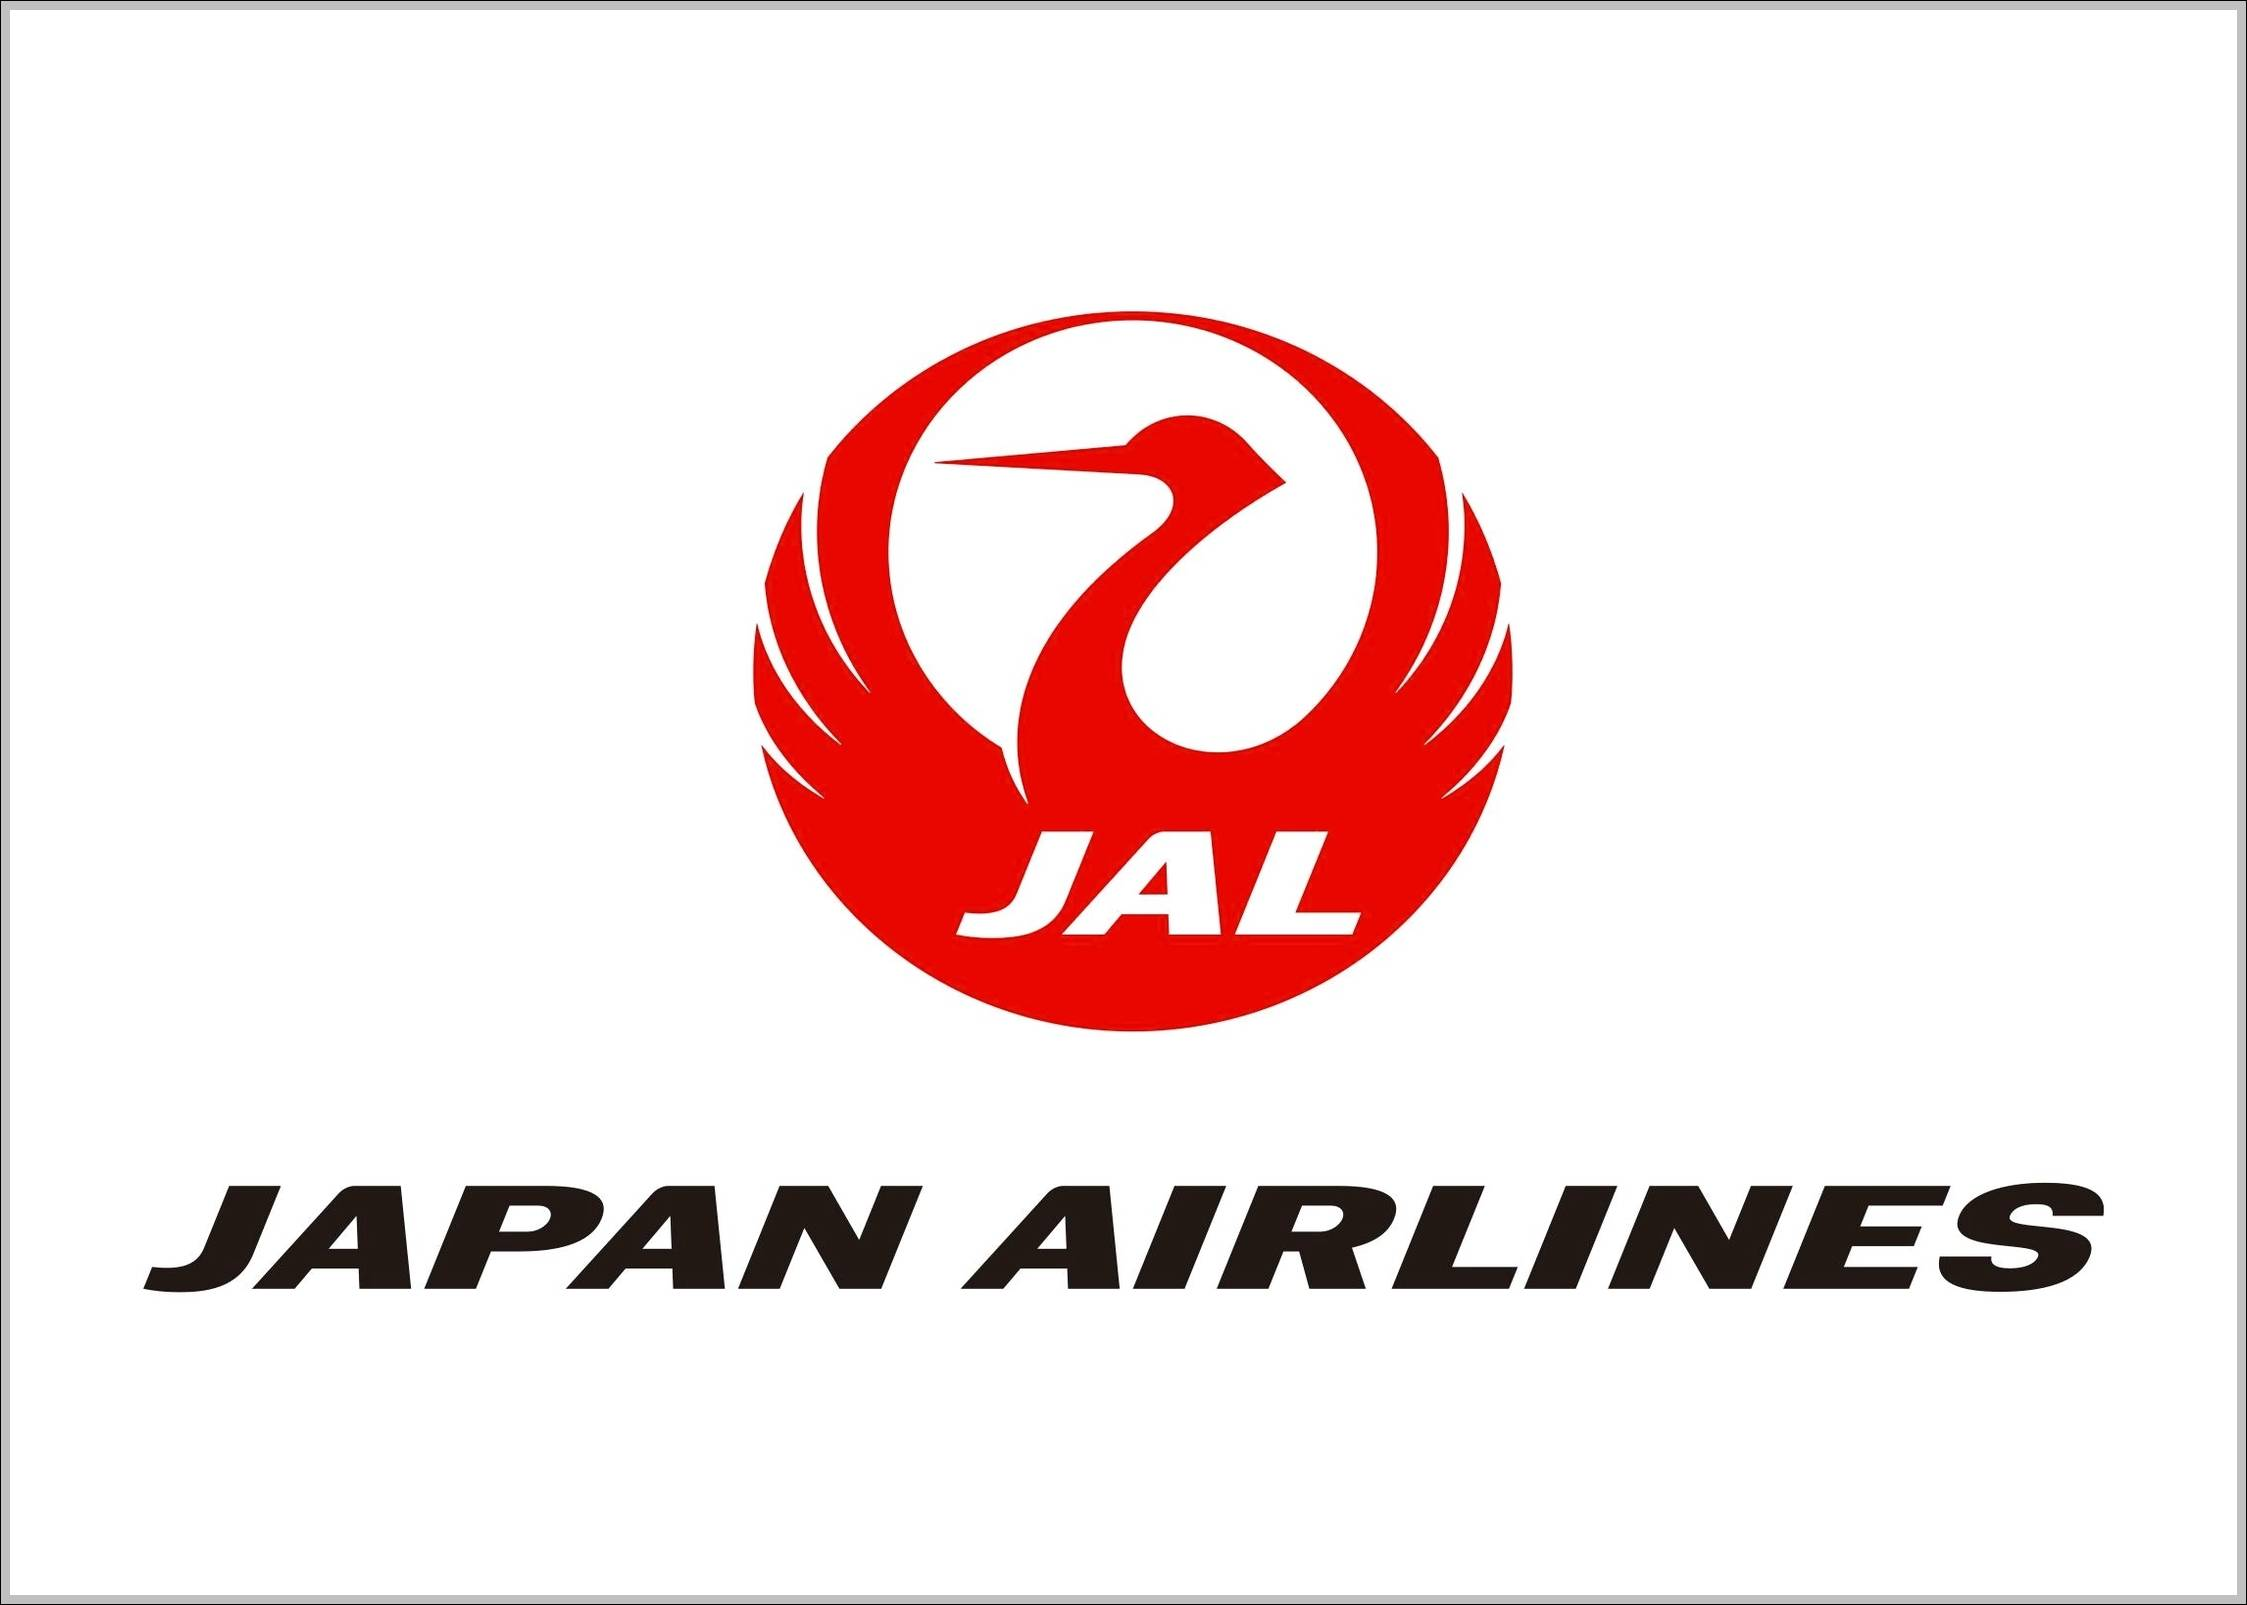 Airlines Logo Sign Logos Signs Symbols Trademarks Of